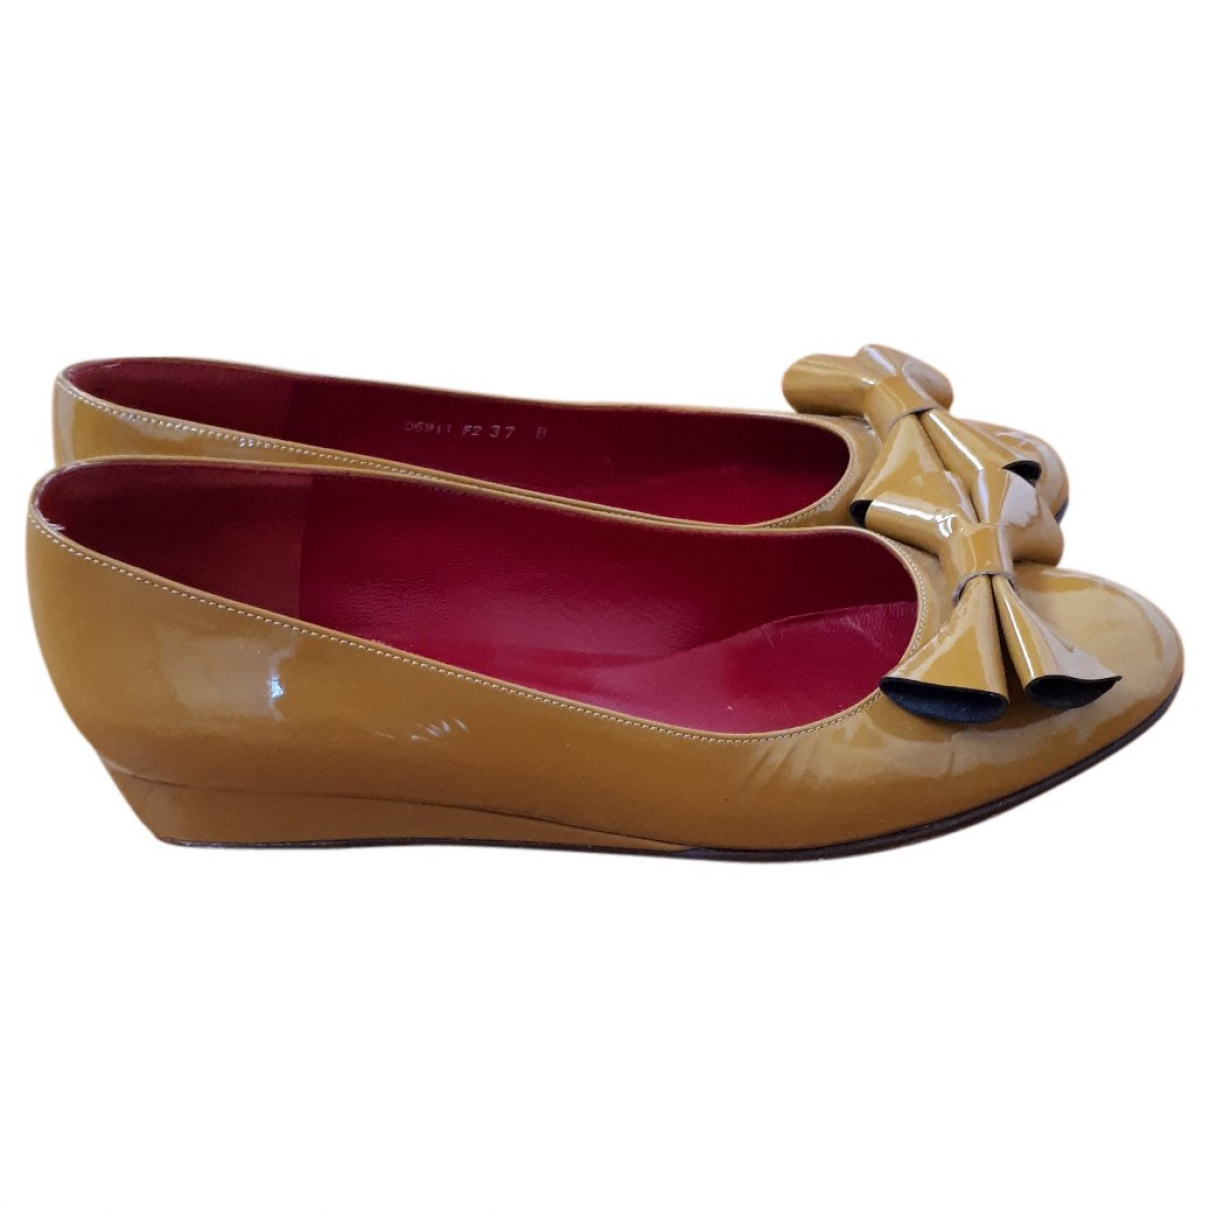 Cacharel \N Patent leather Ballet flats for Women 37 EU